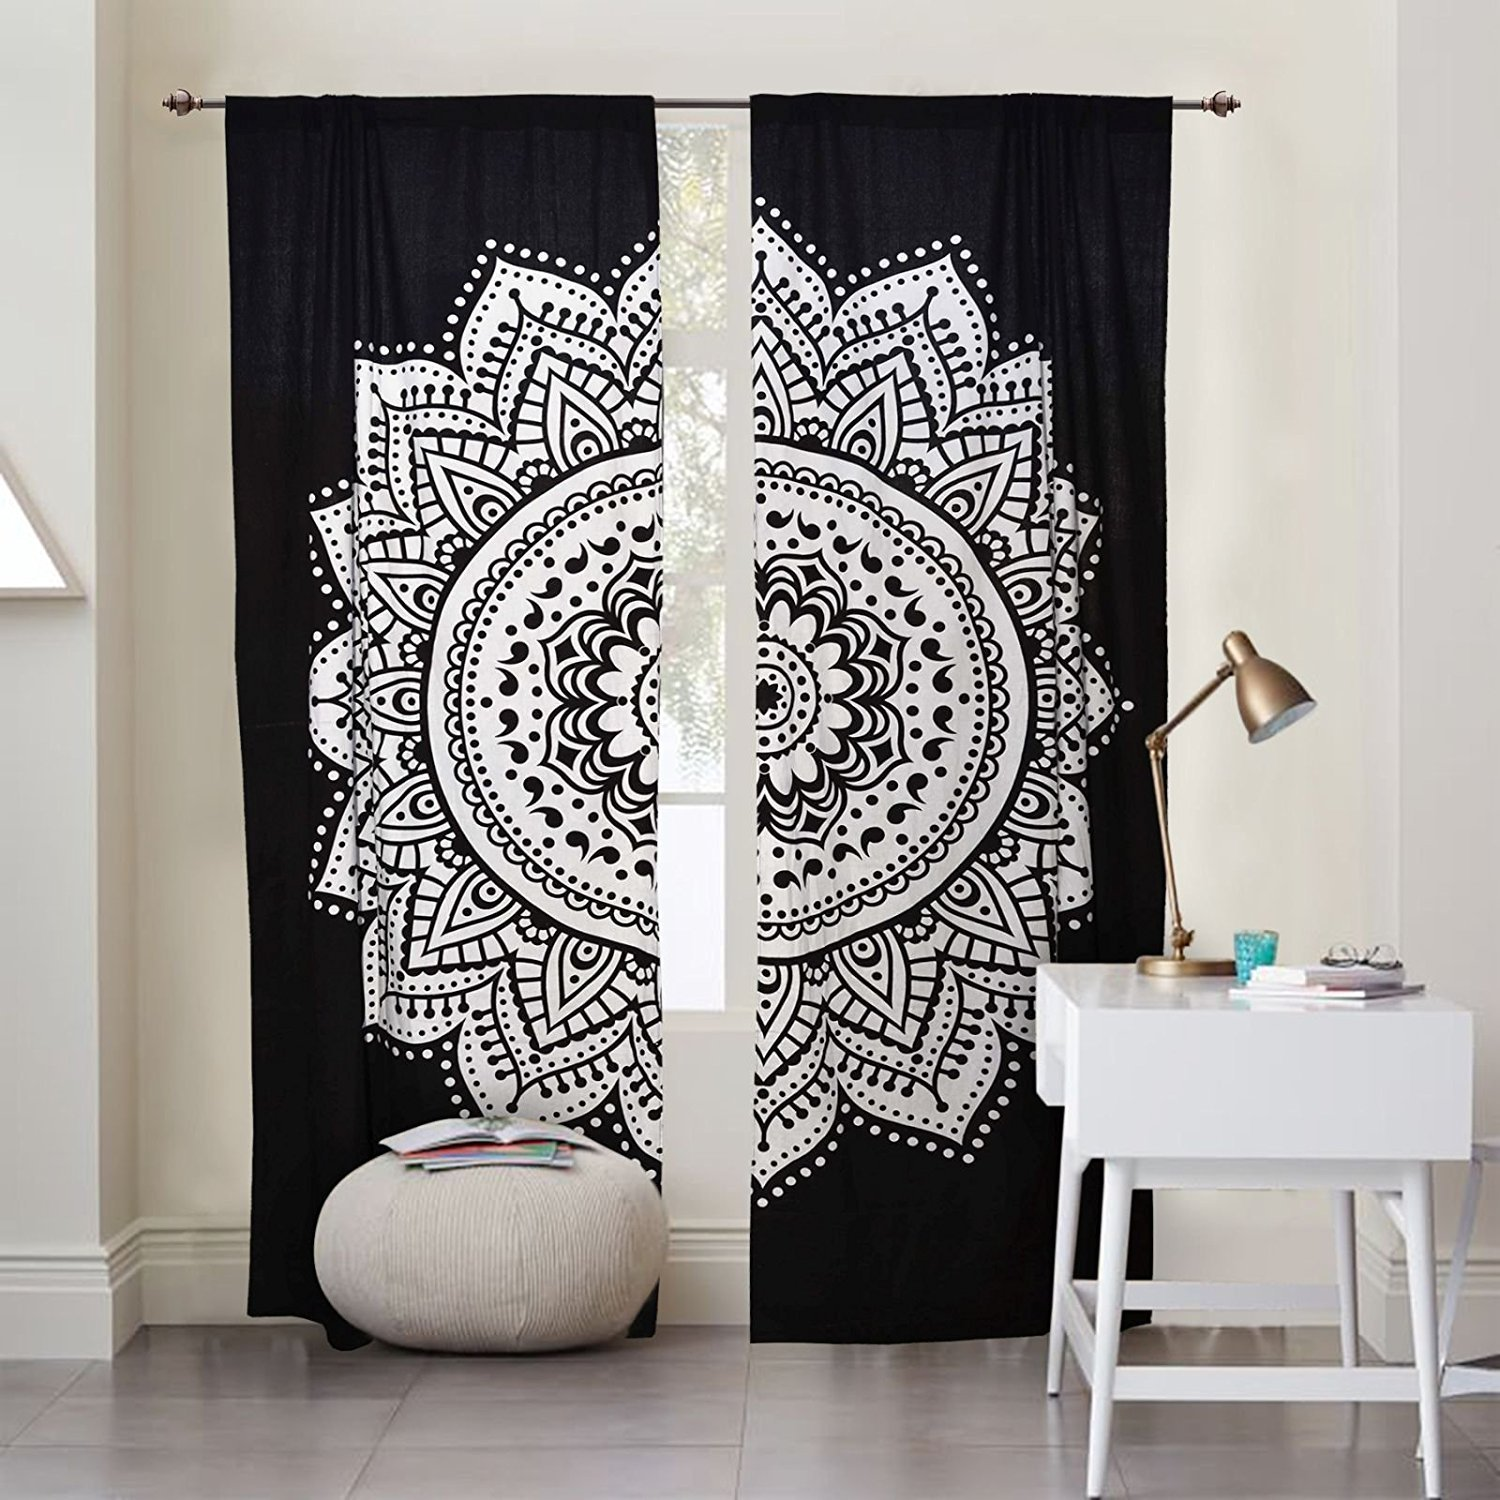 Window Curtains Black and White Mandala Wall Covering Hanging Door Valances Tapestry Room Divider Curtains Indian BedroomPortiere Hanging Drape Mandala Wall Decoration THE DARJII